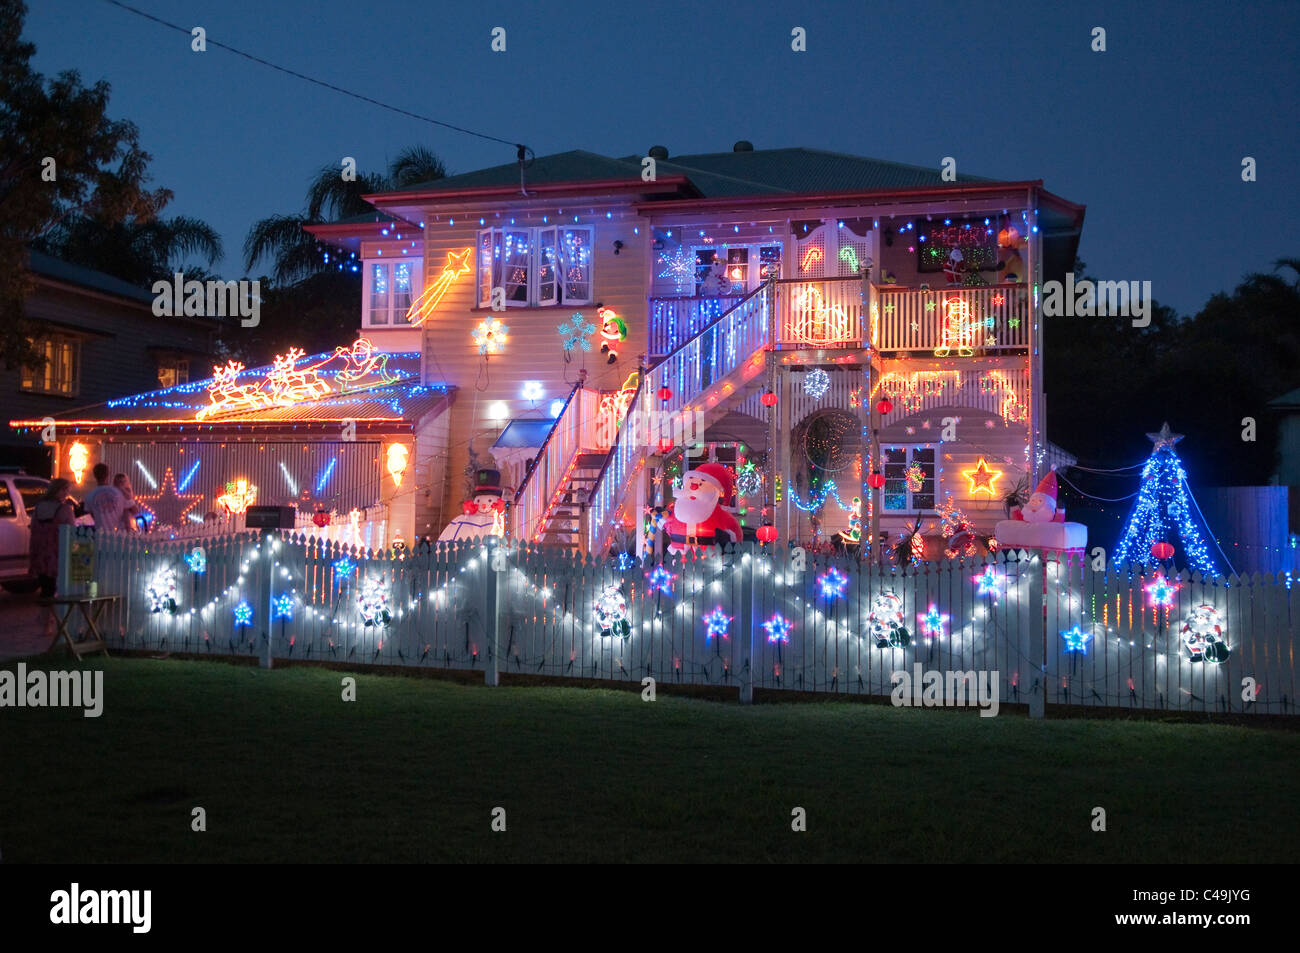 christmas lights decorating a house brisbane queensland australia stock image